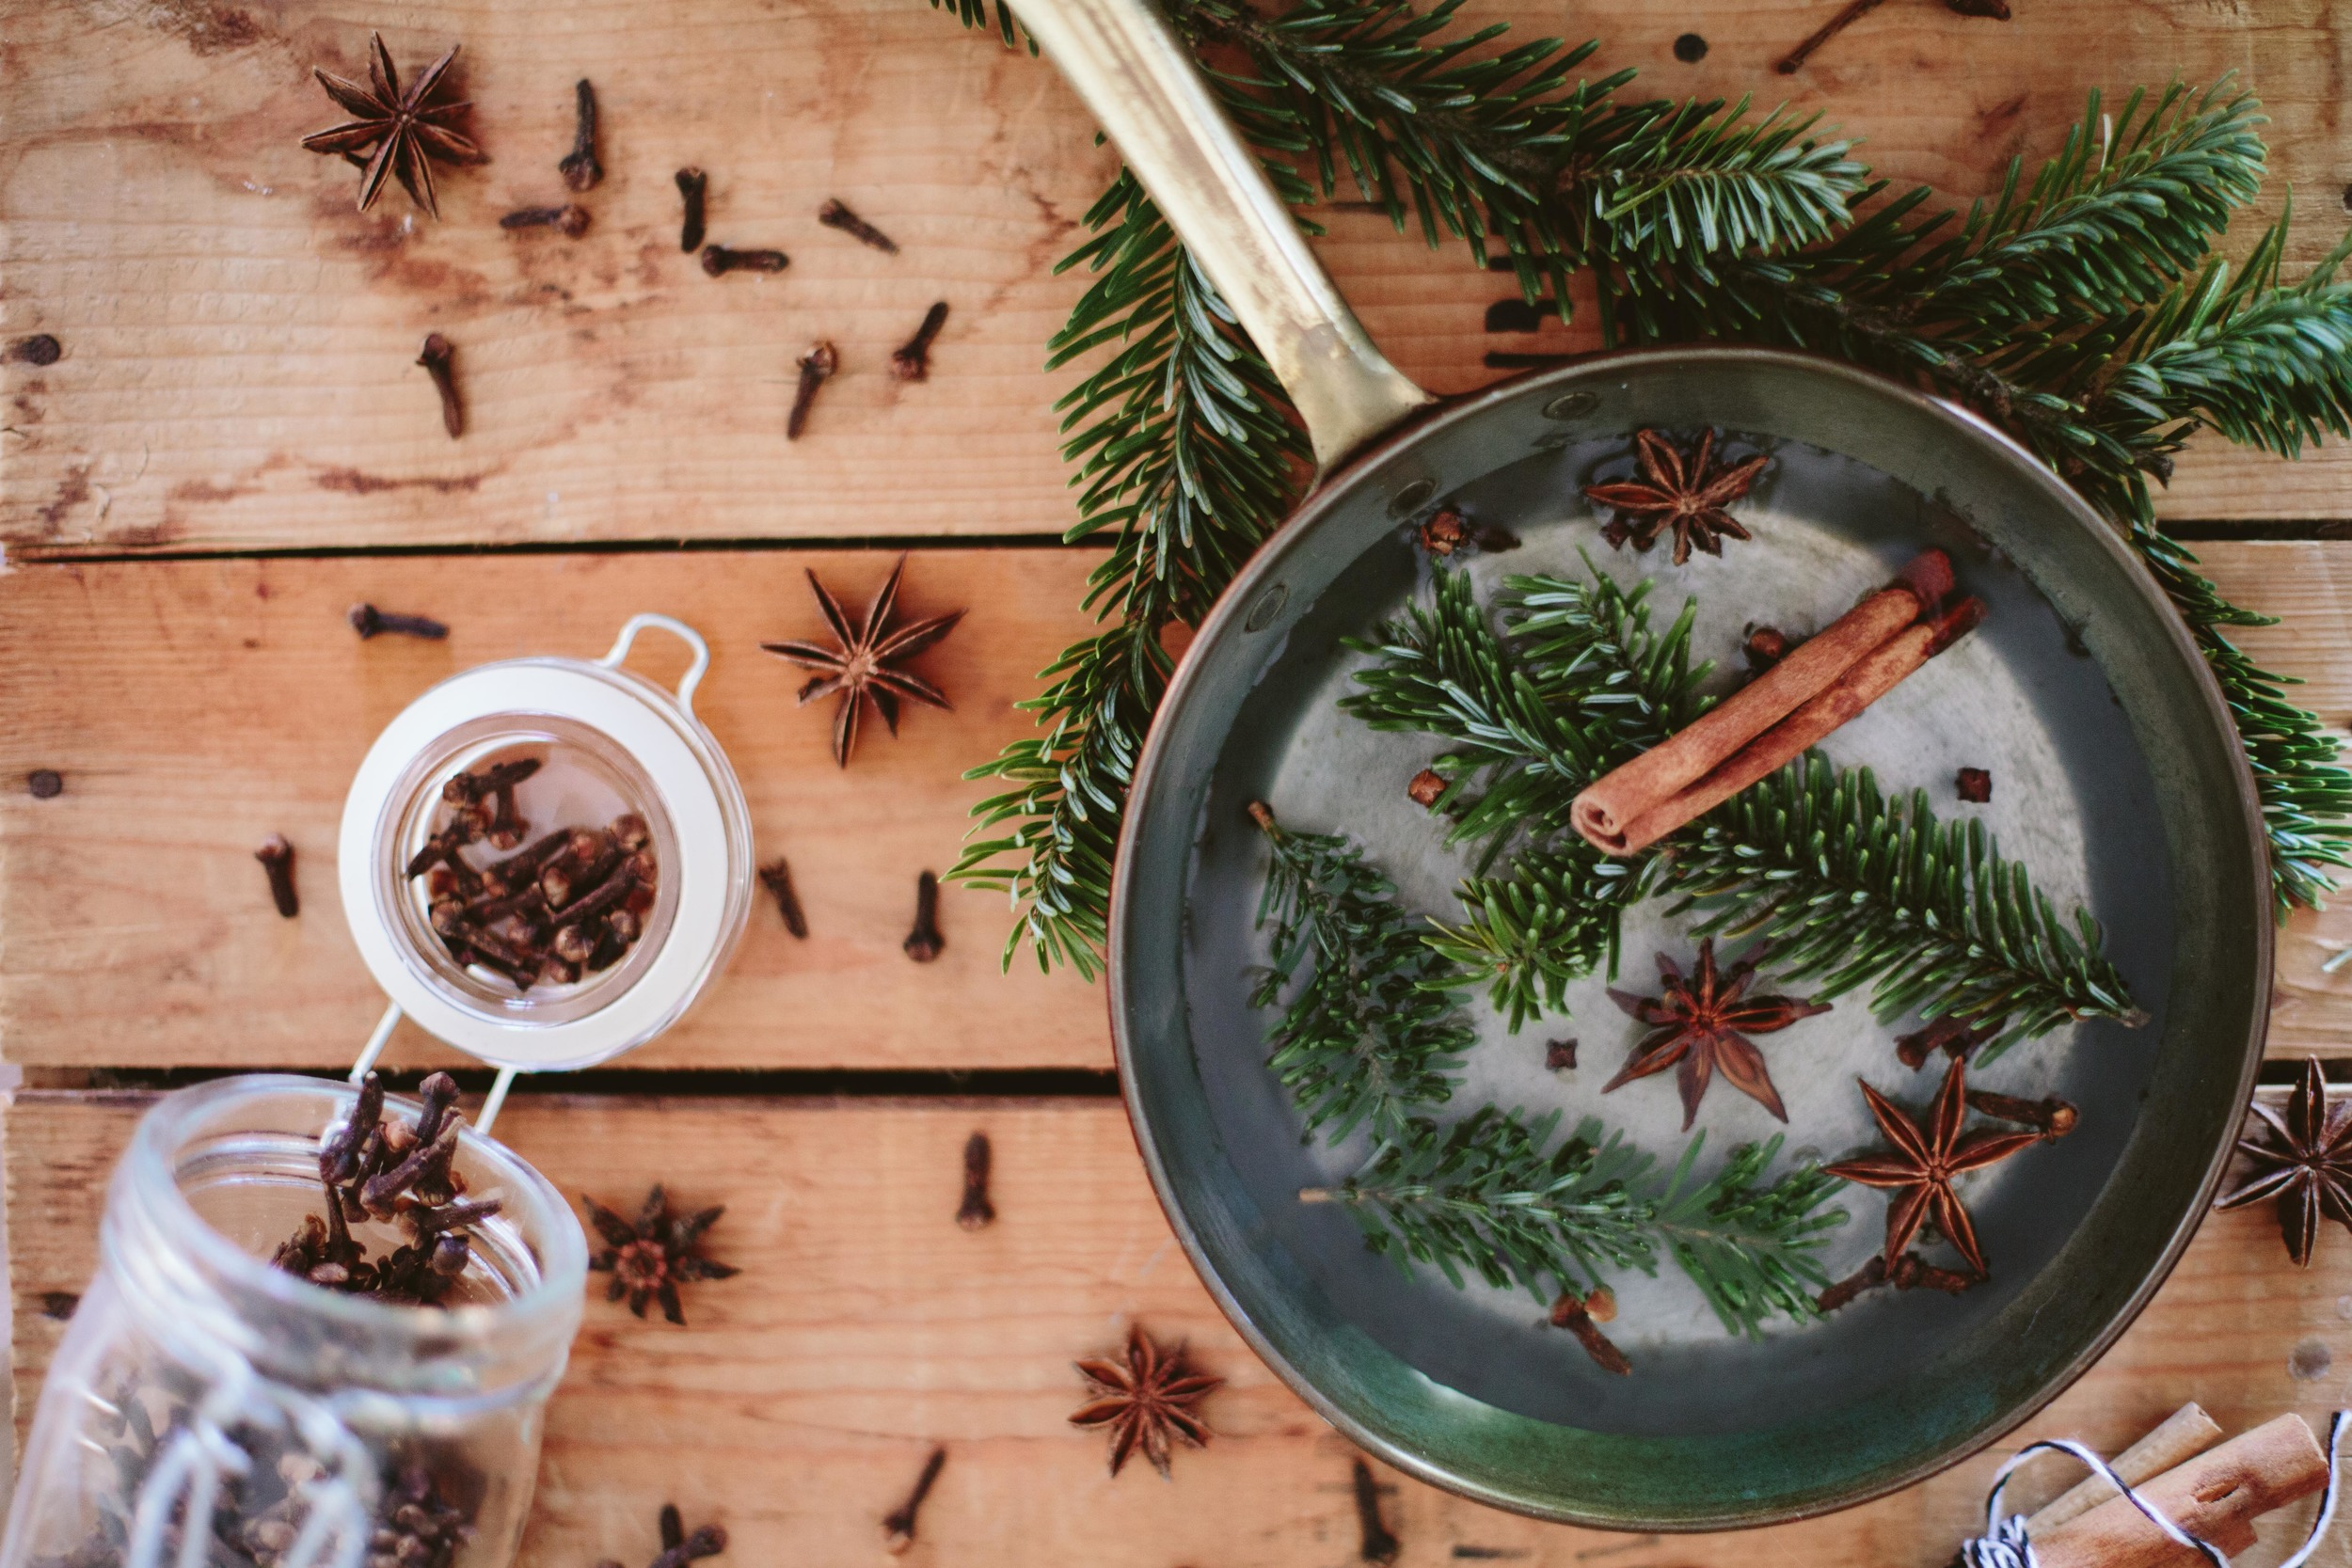 A TABLE TOP CHRISTMAS // THE SMELLS OF WINTER SOLSTICE BY THE ETERNAL CHILD